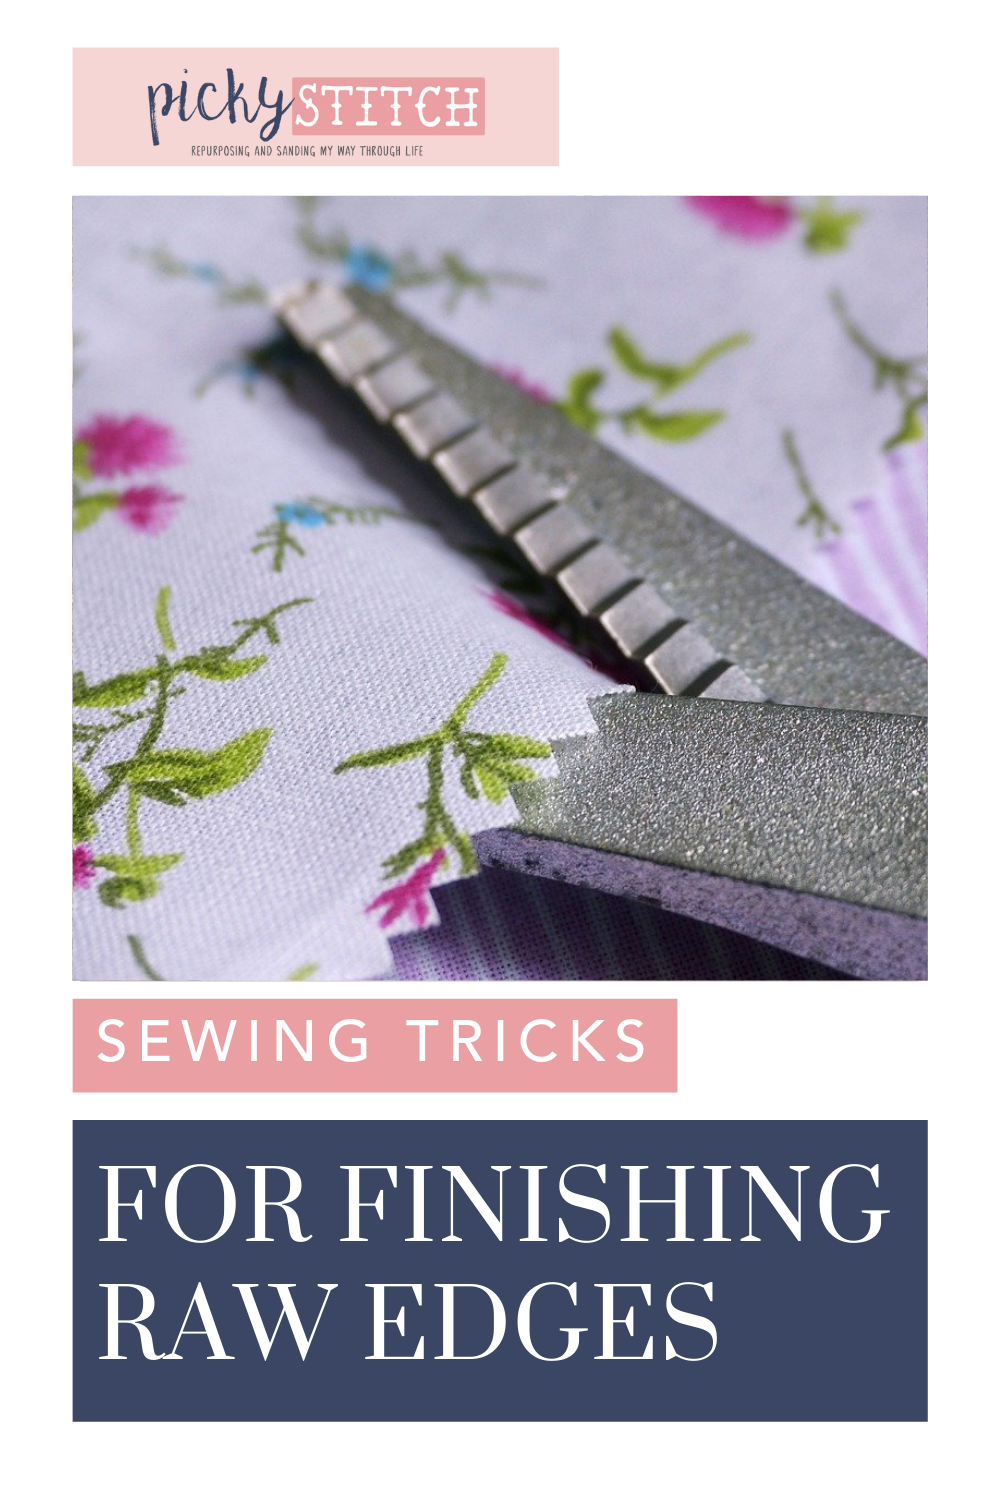 Pickystitch.com is loaded with tips and ideas to help you tackle any DIY project. Not sure how to clean up the edges on your sewing projects? Find out all of the ways you can finish edges today!